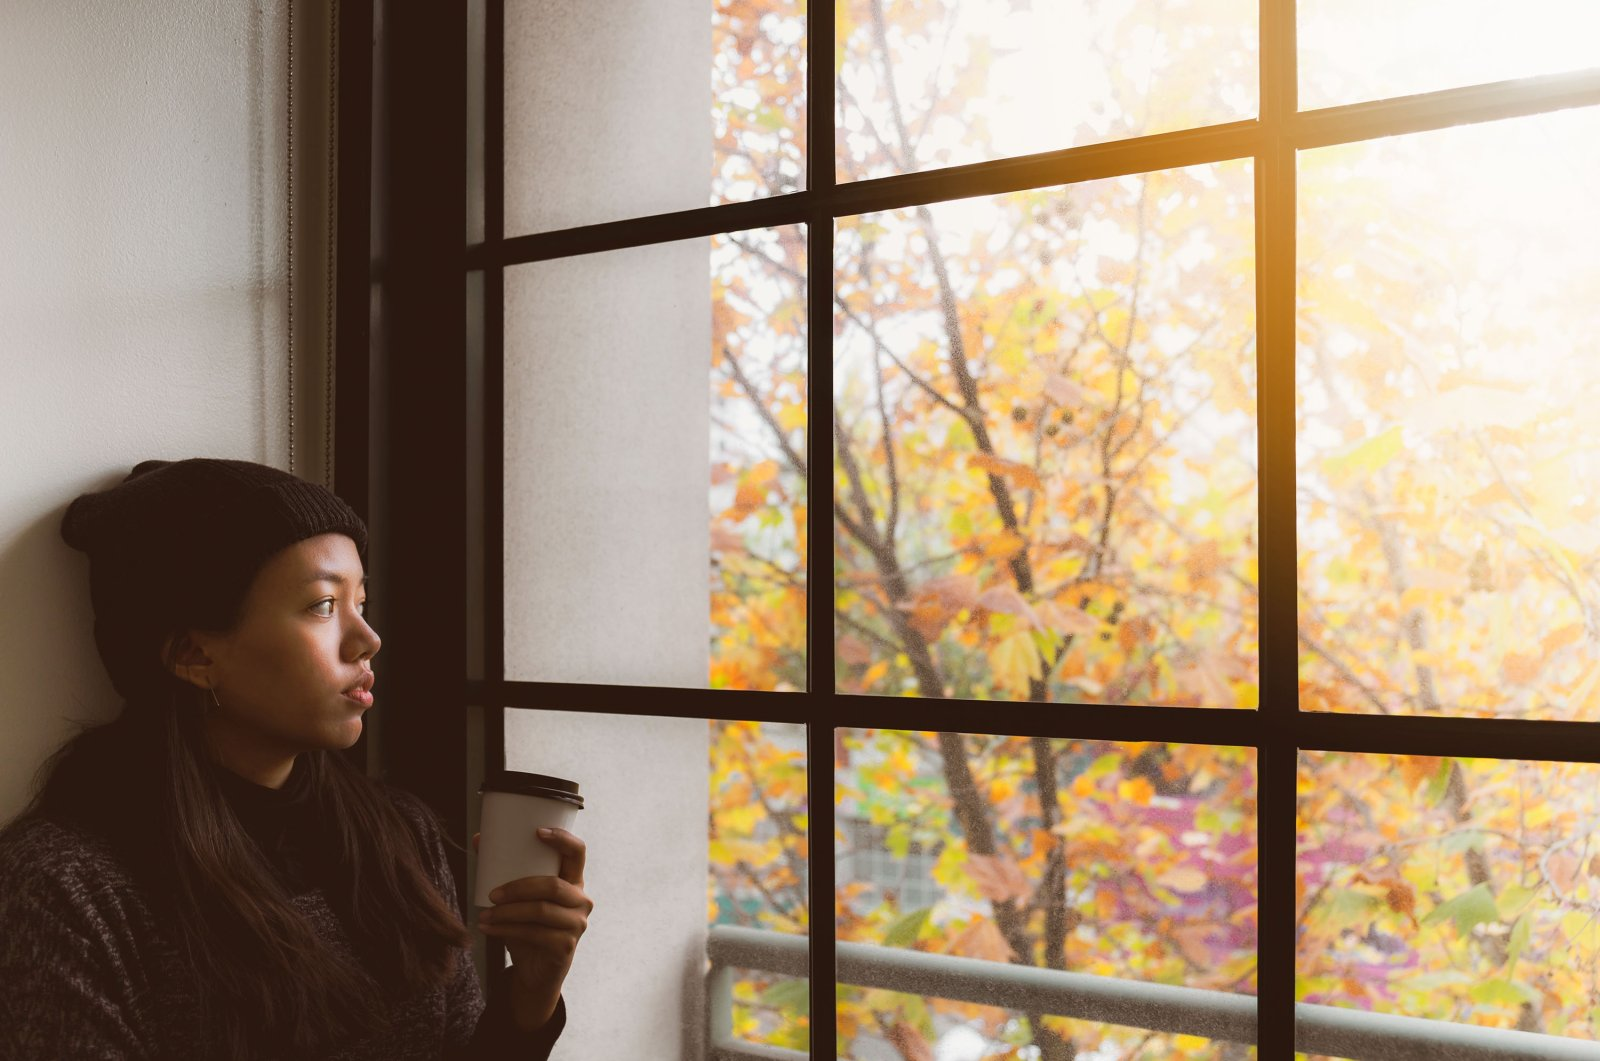 Homesickness can lead to depression, so one should explore ways to beat it. (Shutterstock Photo)